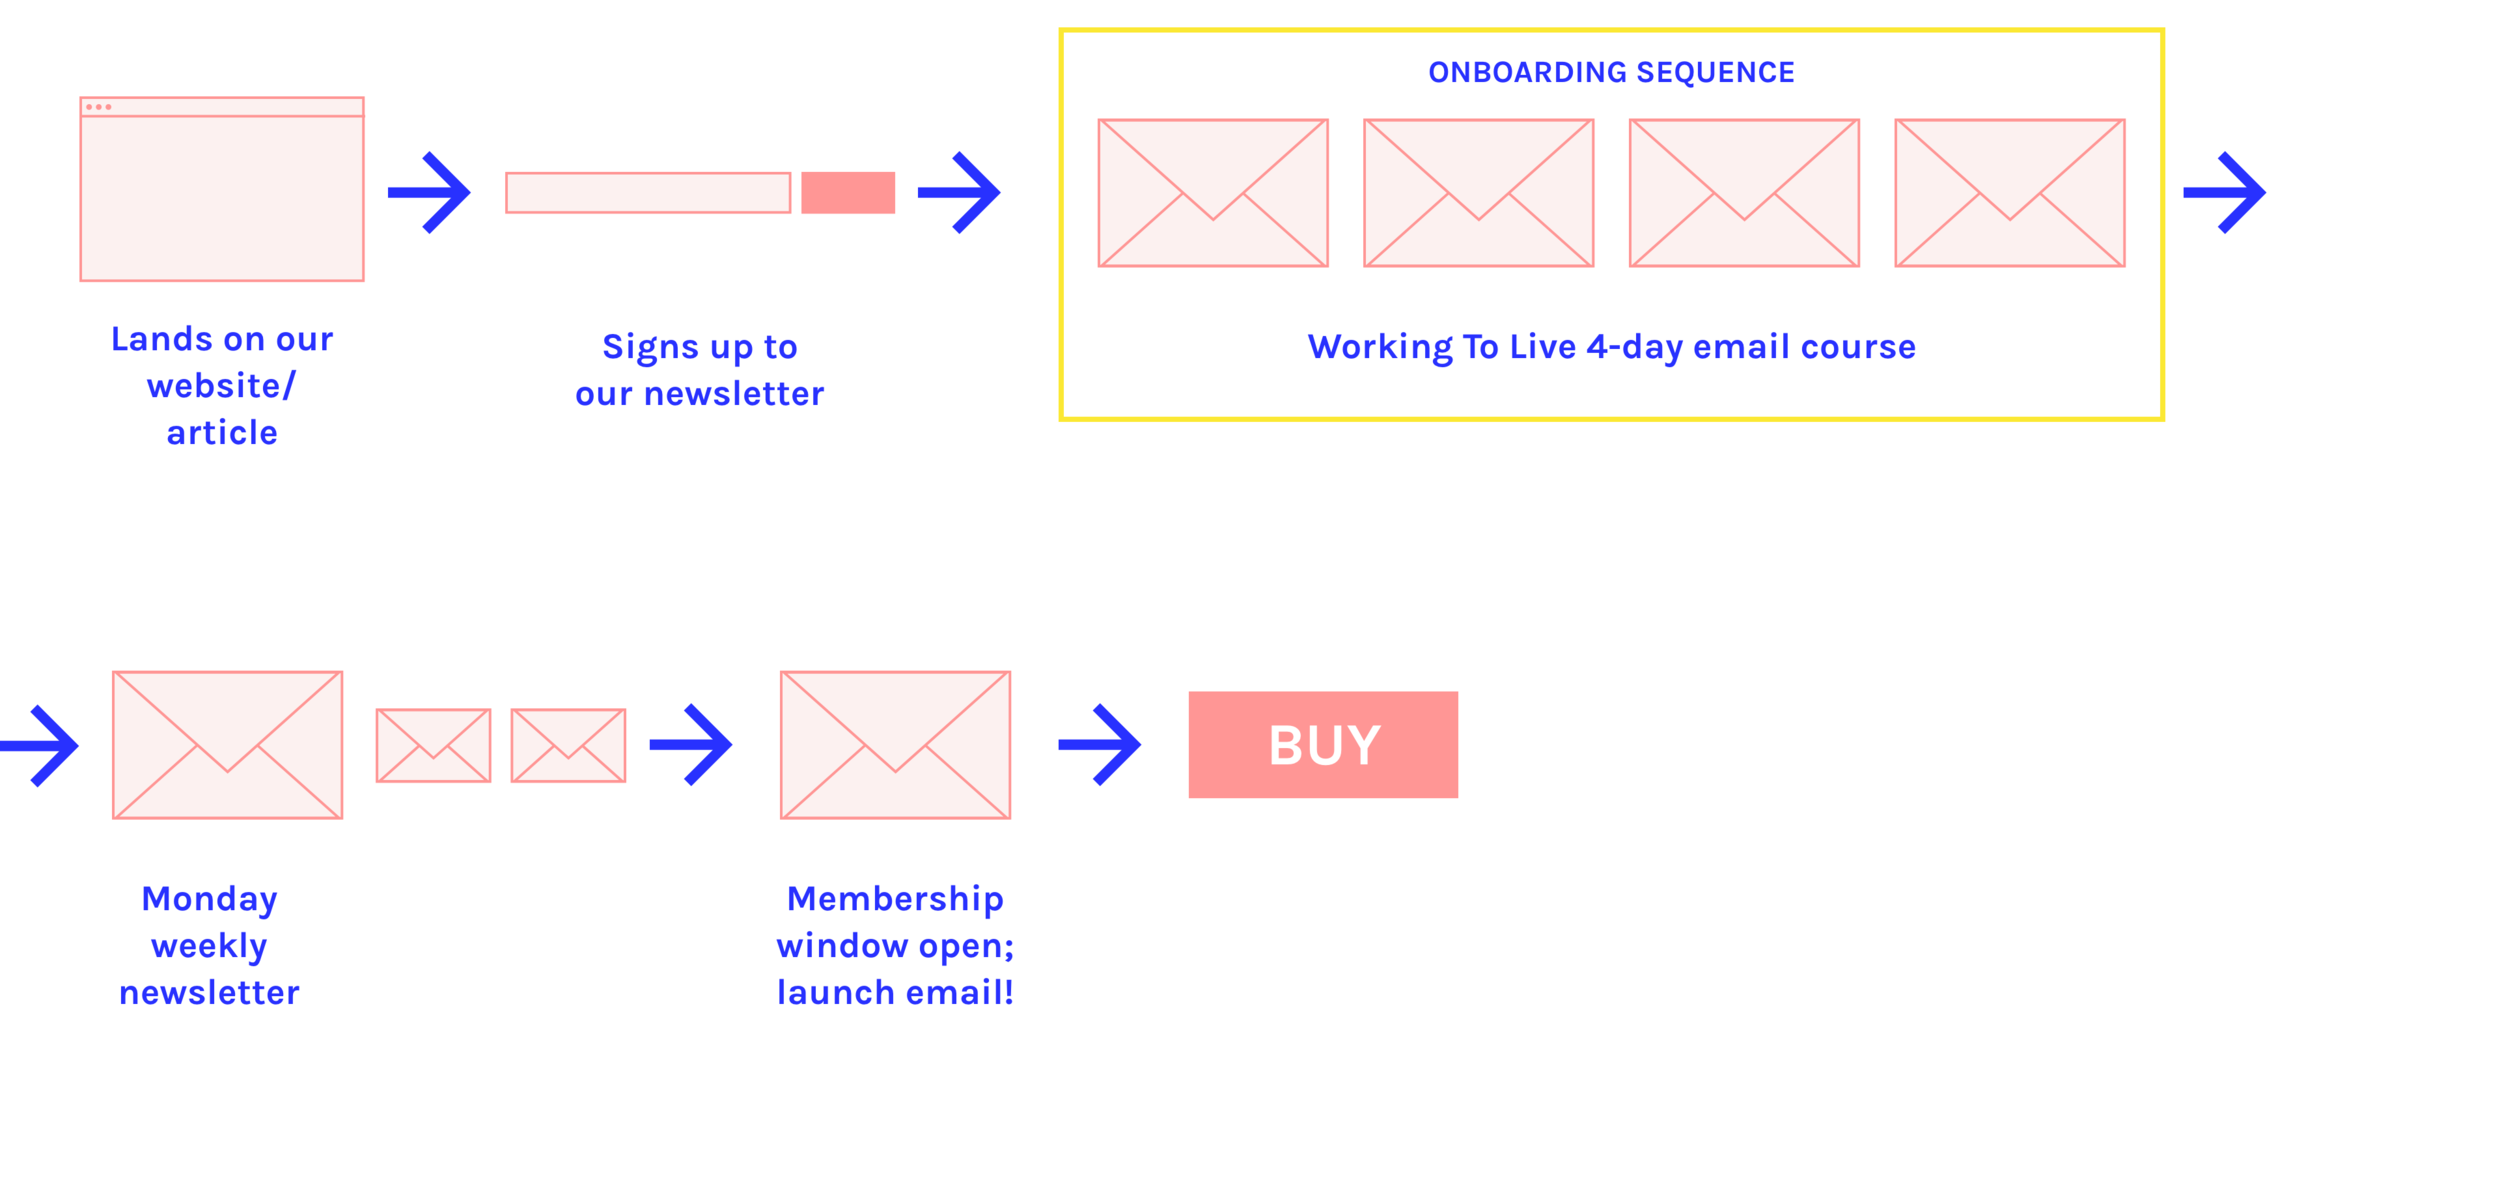 Basic email journey with Working To Live onboarding added